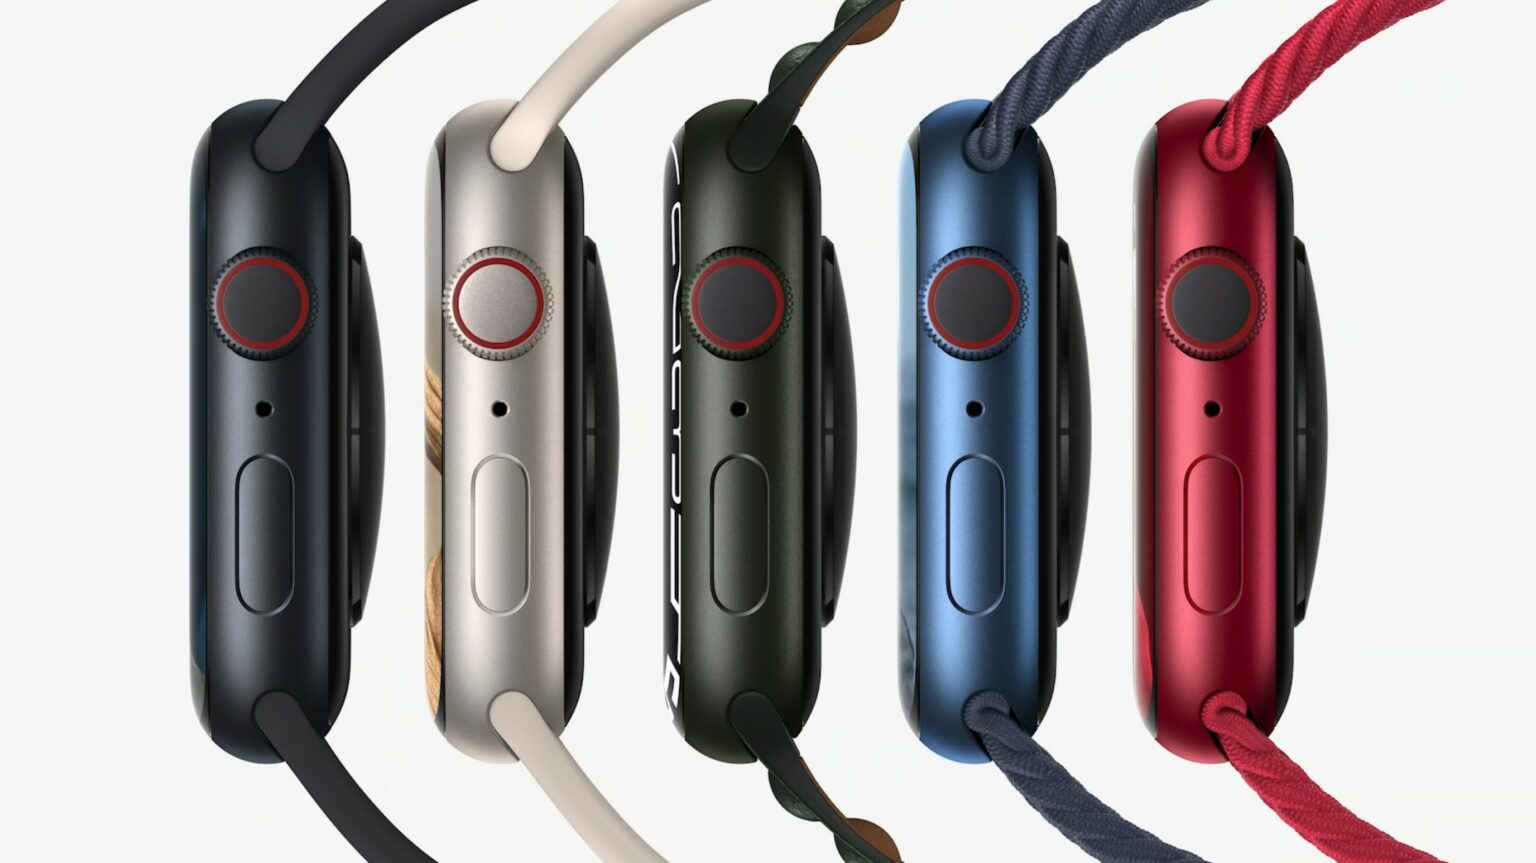 The aluminum Apple Watch Series 7 comes in five colors.